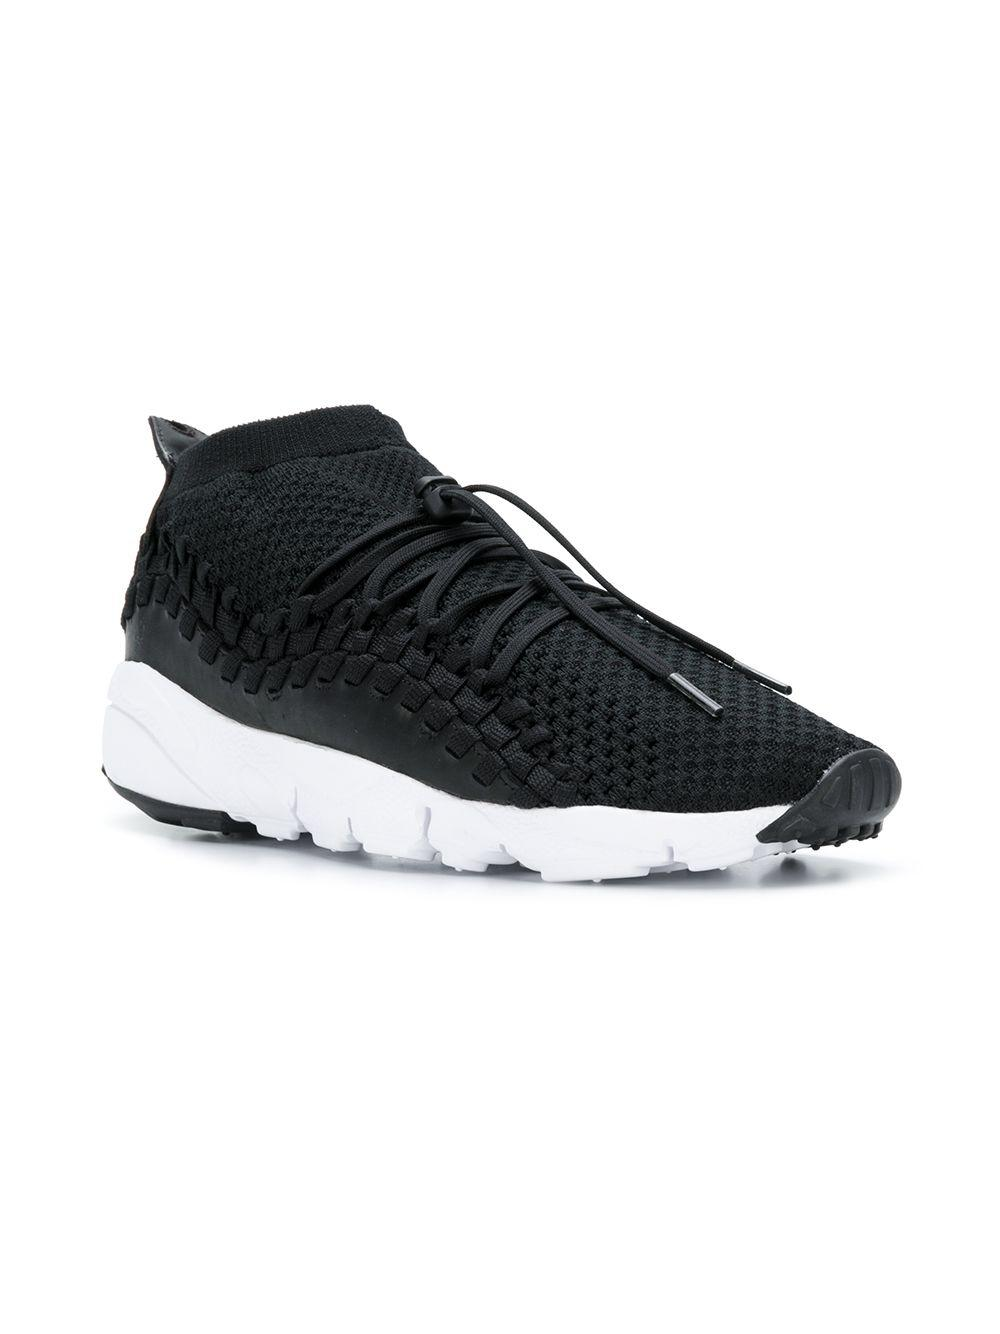 254f8f28ce71 Nike - Black Air Footscape Woven Dm Sneakers for Men - Lyst. View fullscreen